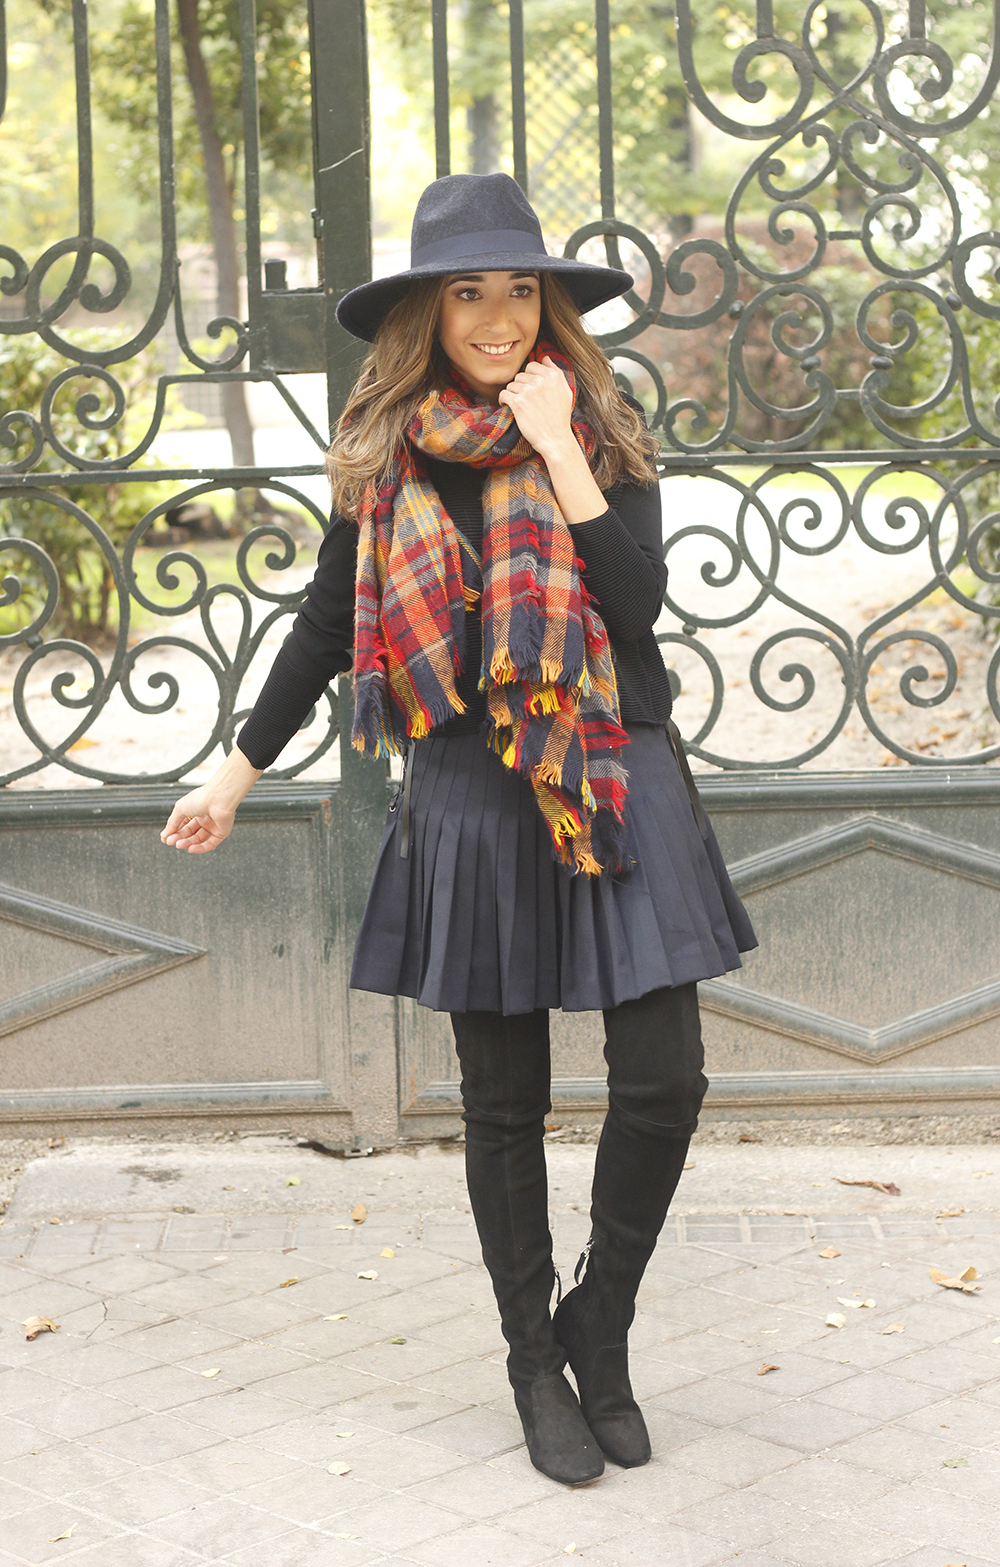 blue pleated skirt with over the knee boots blue hat black jersey outfit style 04